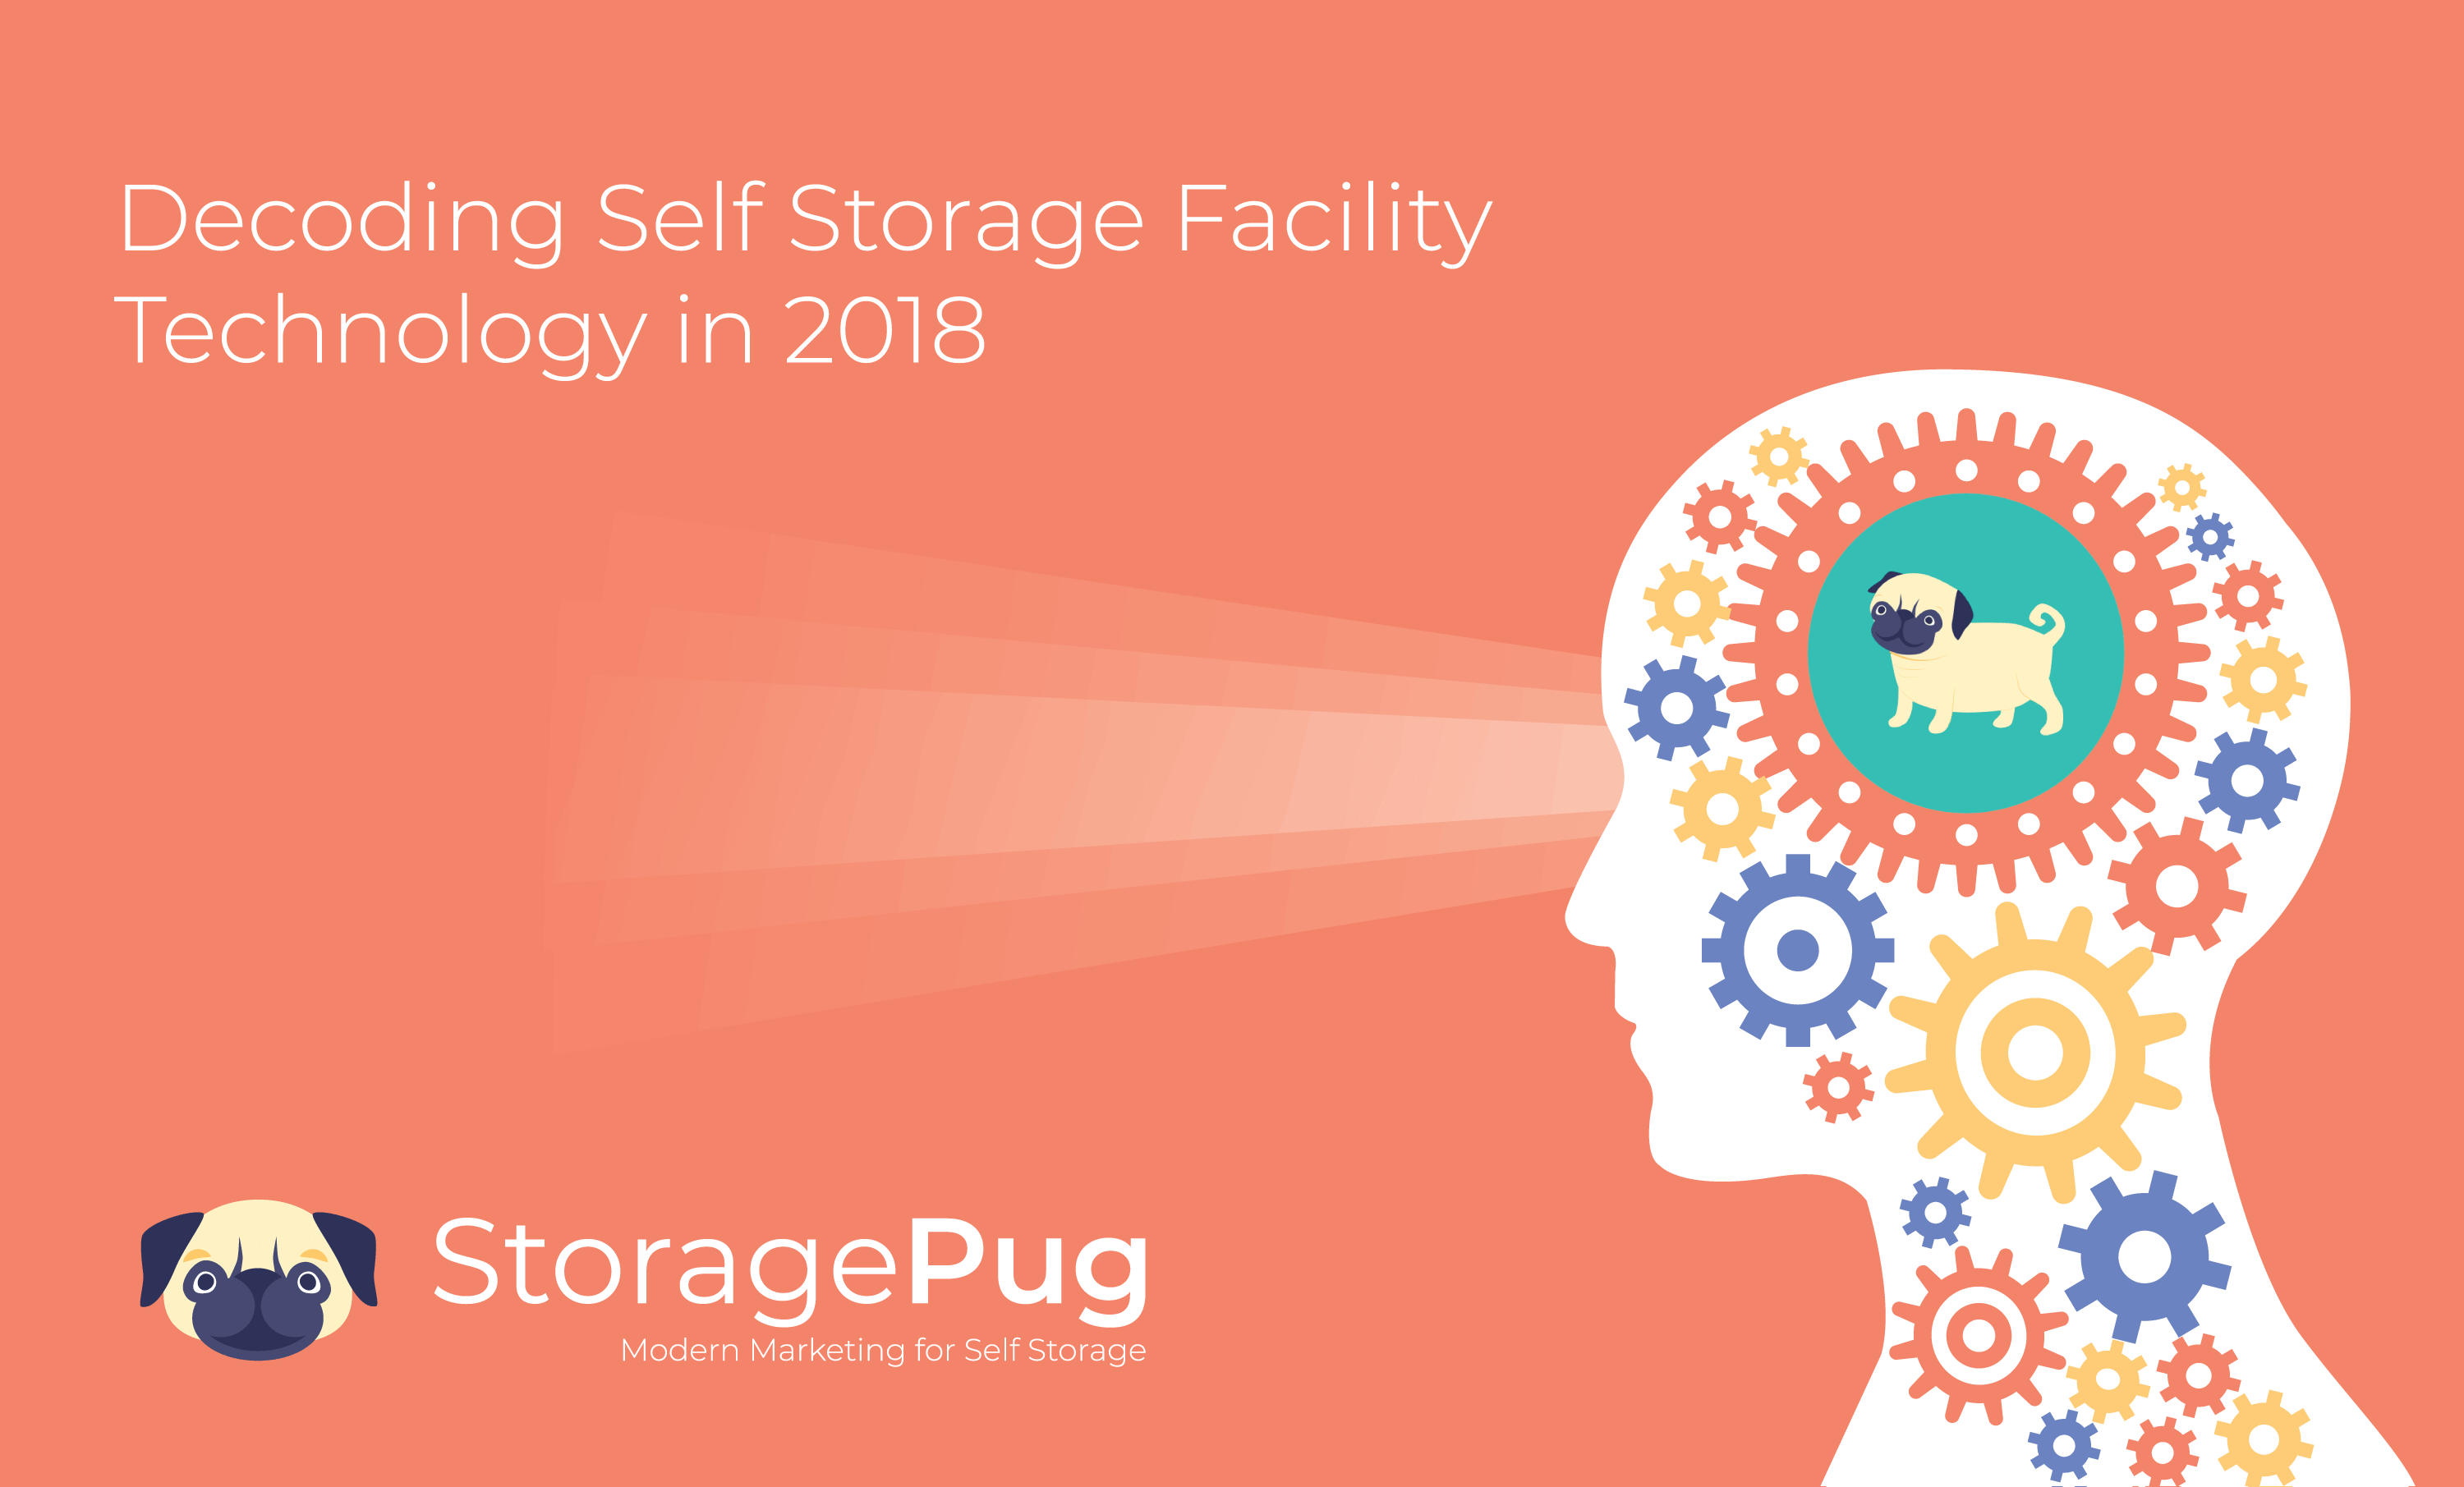 Decoding Self Storage Facility Technology